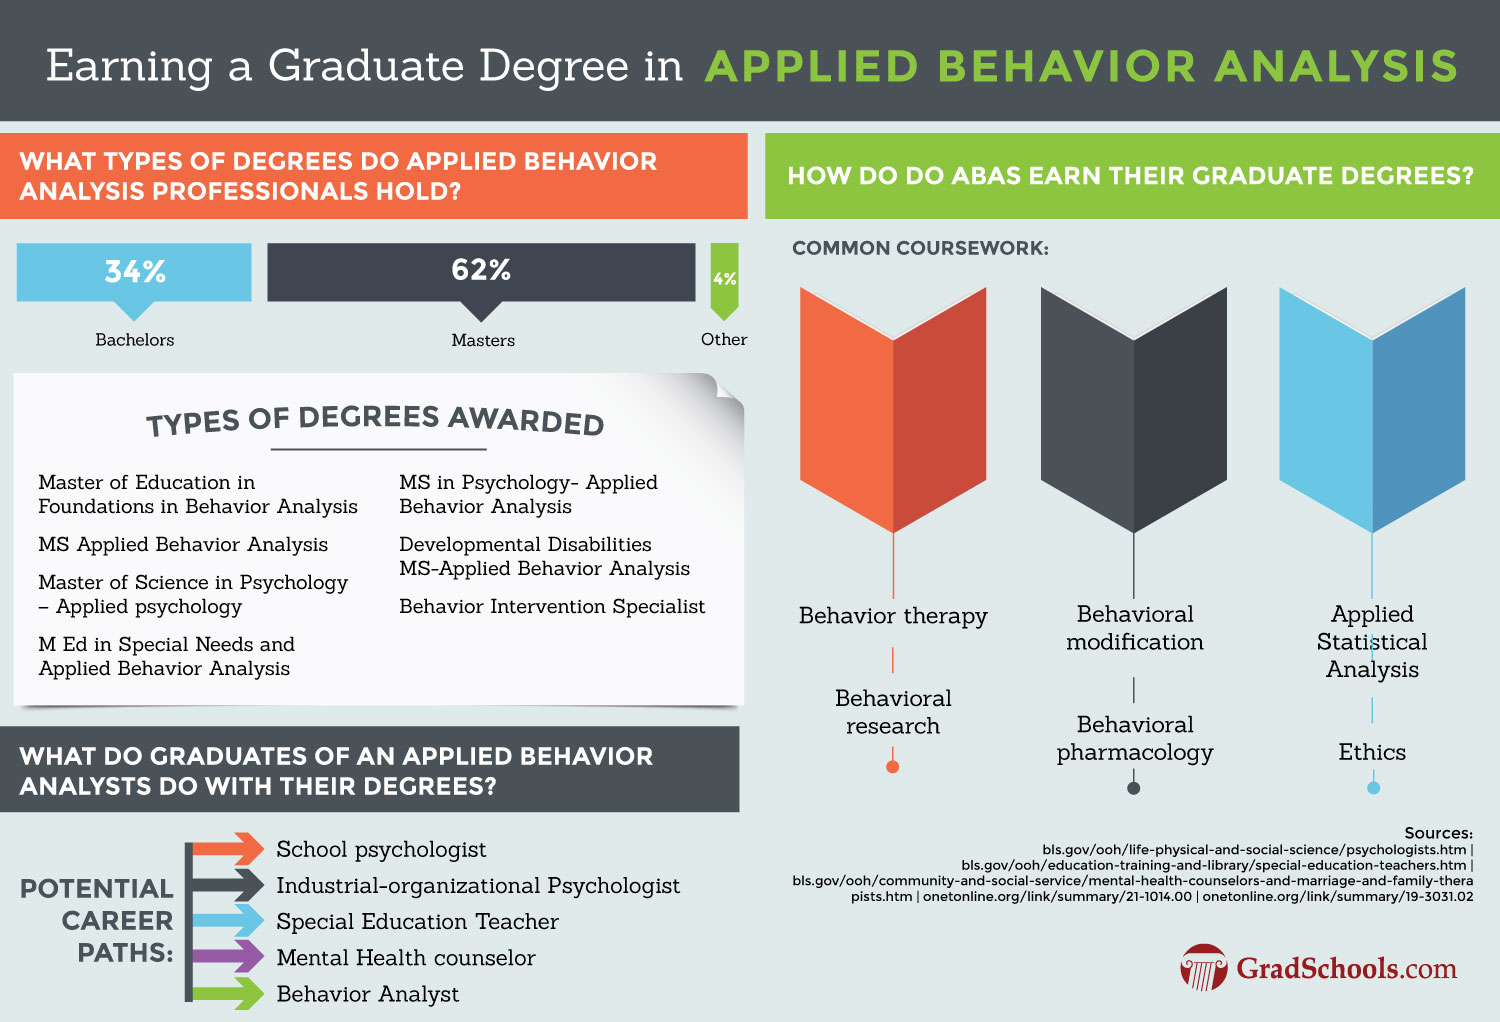 [geo-name] PhD Programs in Applied Behavior Analysis